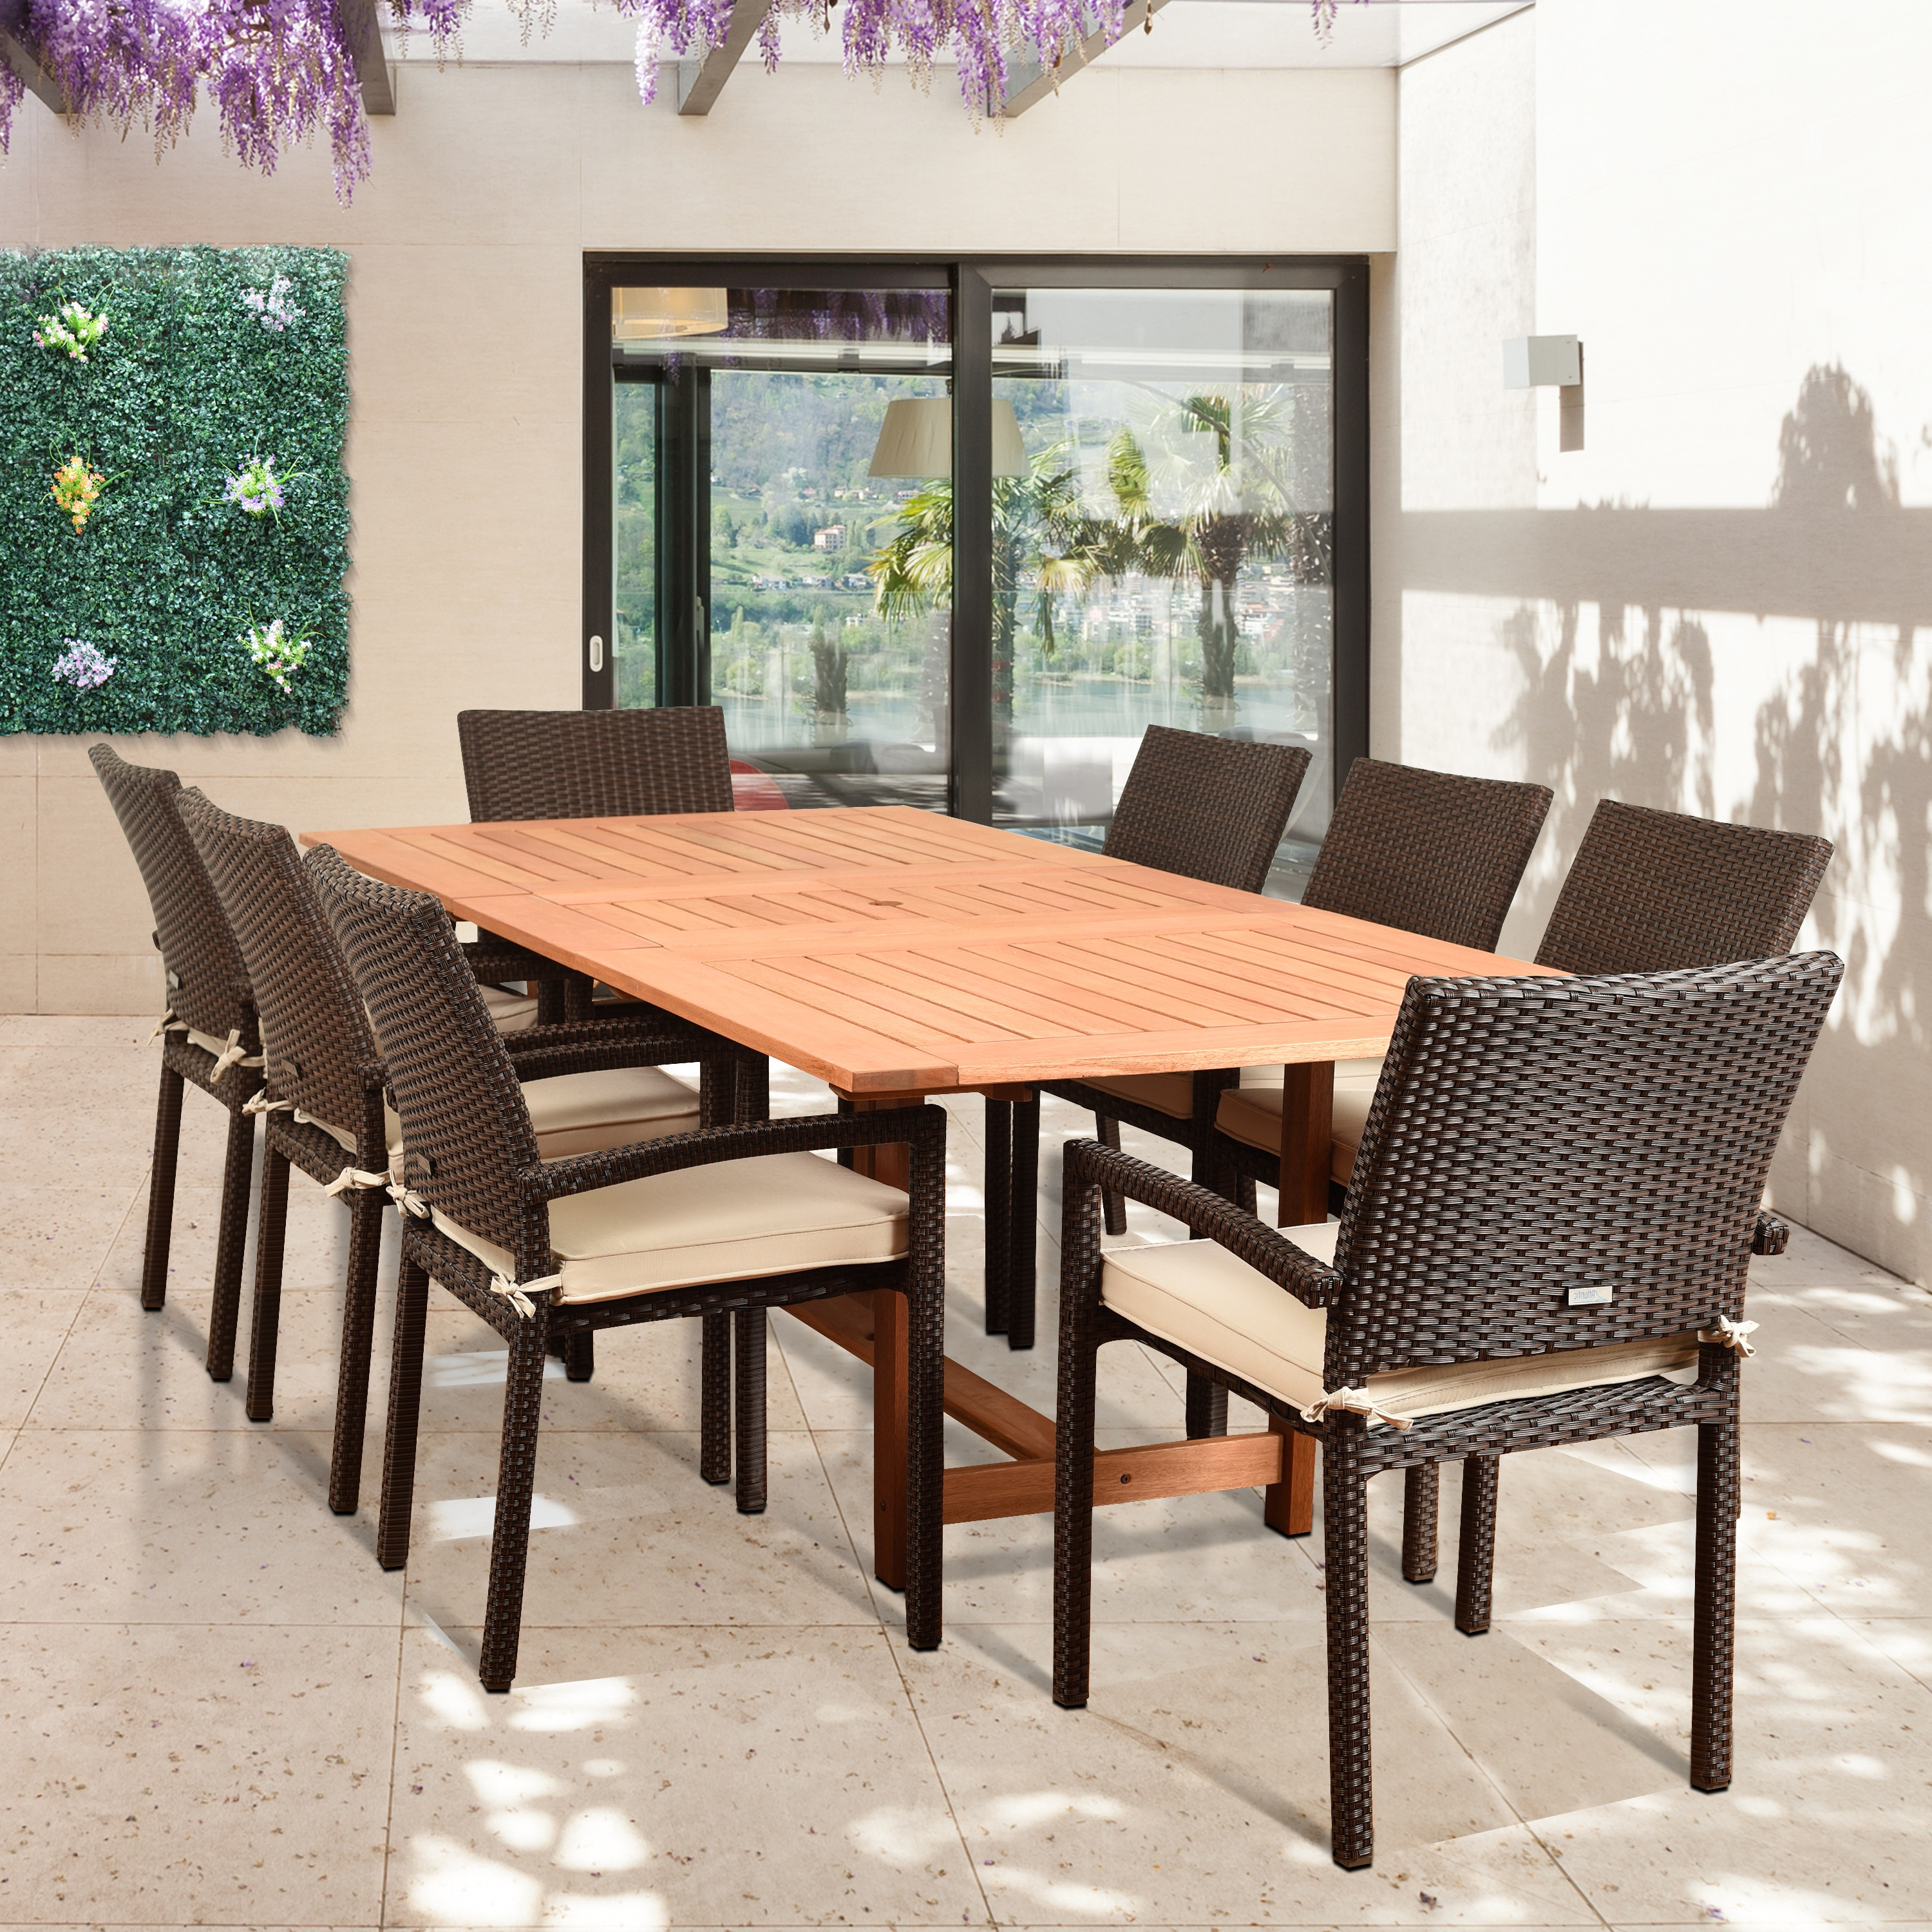 furniture inspirations df picture decorating good patio random and home